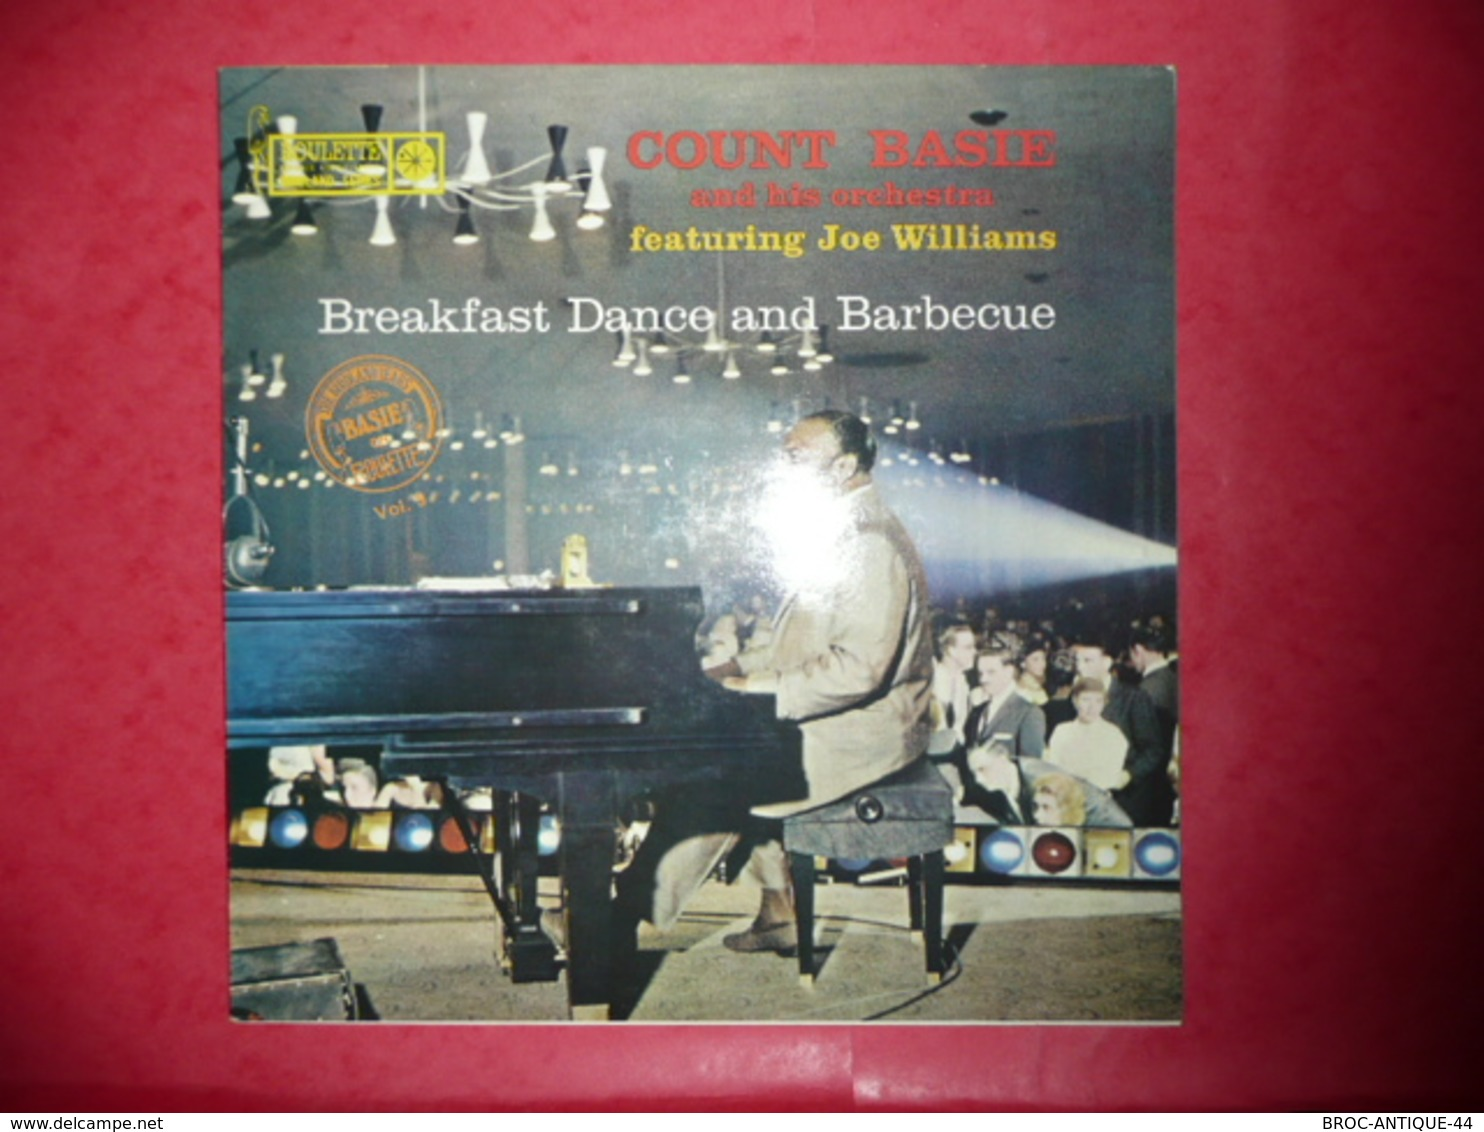 LP33 N°579 - COUNT BASIE & HIS ORCHESTRA FEATURING JOE WILLIAMS - BREAKFAST DANCE AND BARBECUE - COMPILATION 8 TITRES - Jazz